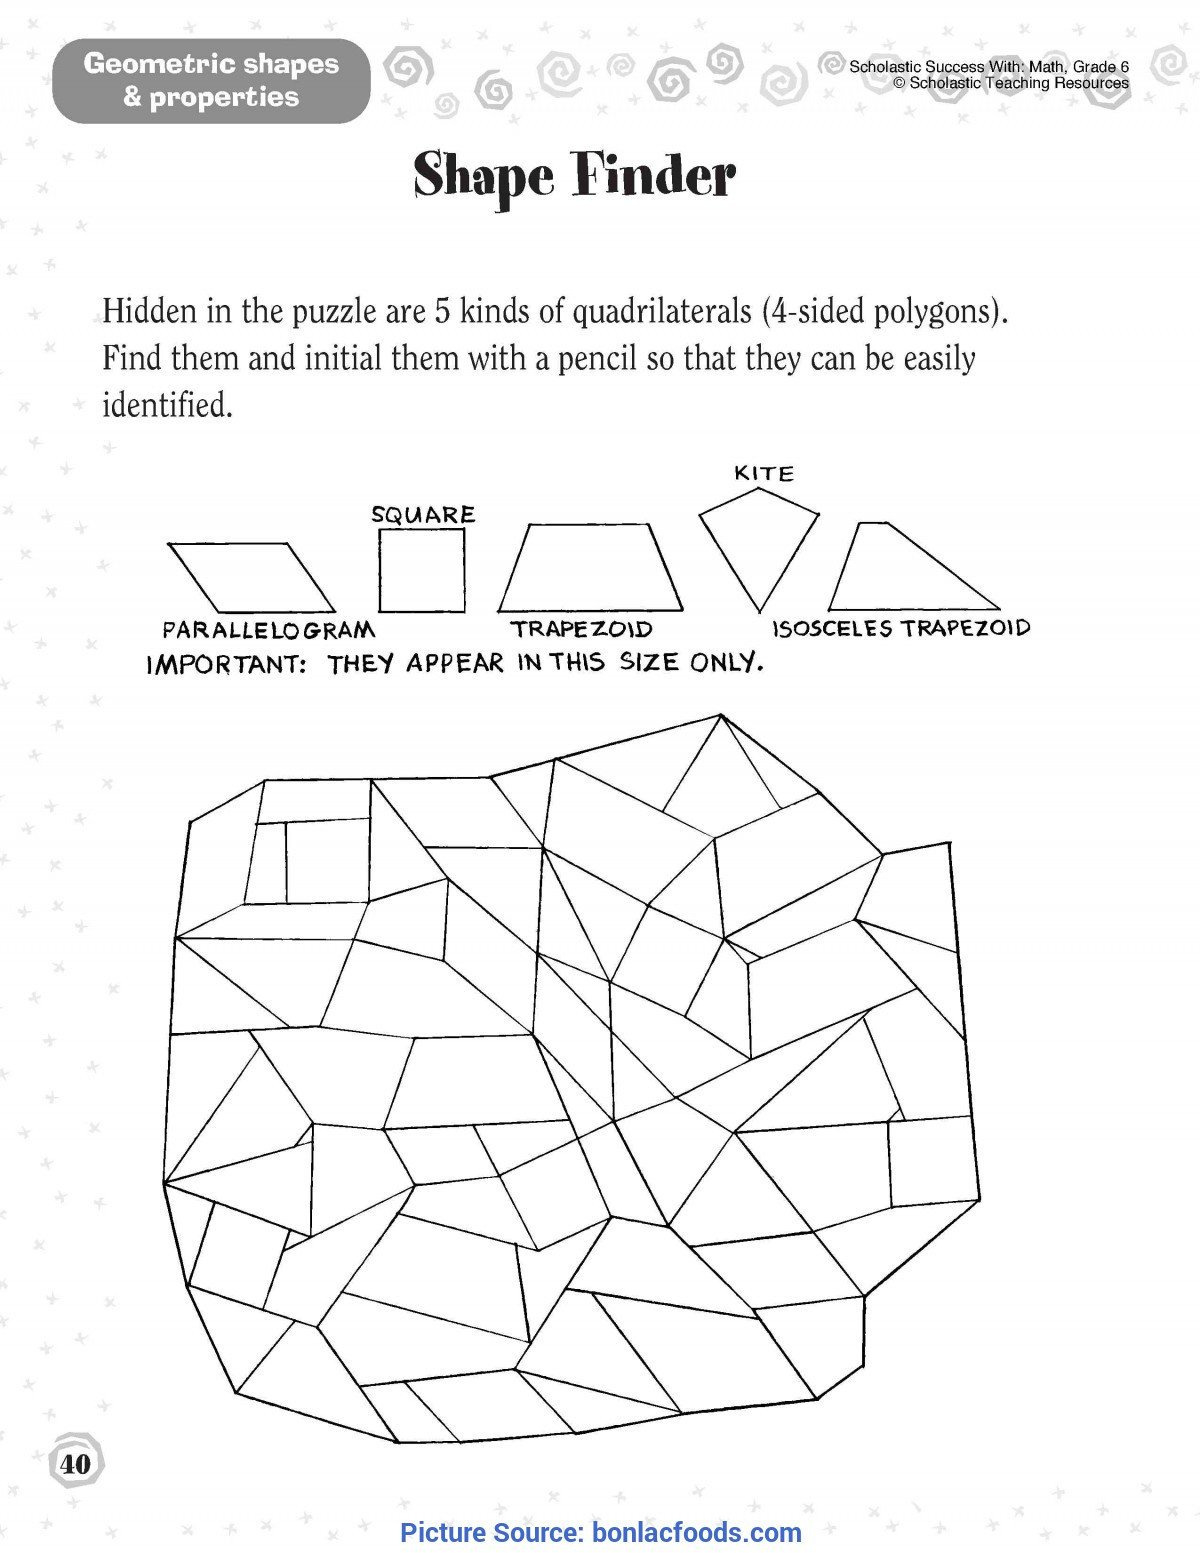 Polygon Worksheets for 2nd Grade Newest Second Grade Geometry Lesson Plans Worksheets for All